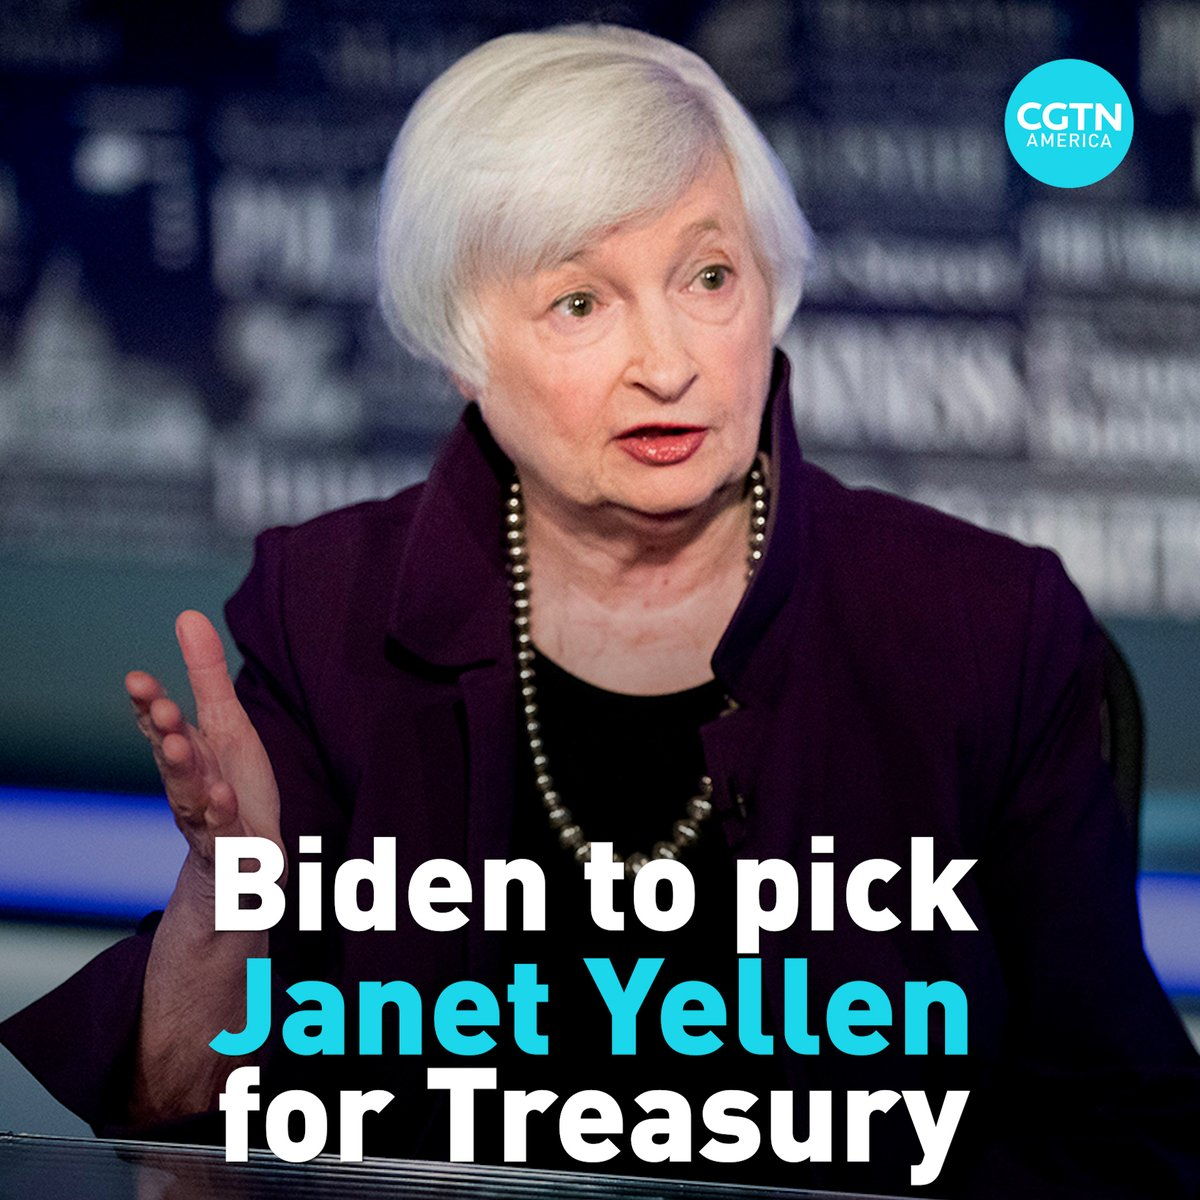 Joe Biden will nominate former Federal Reserve chair Janet Yellen as next U.S. Treasury secretary. Yellen will be the first woman to hold this position if confirmed.